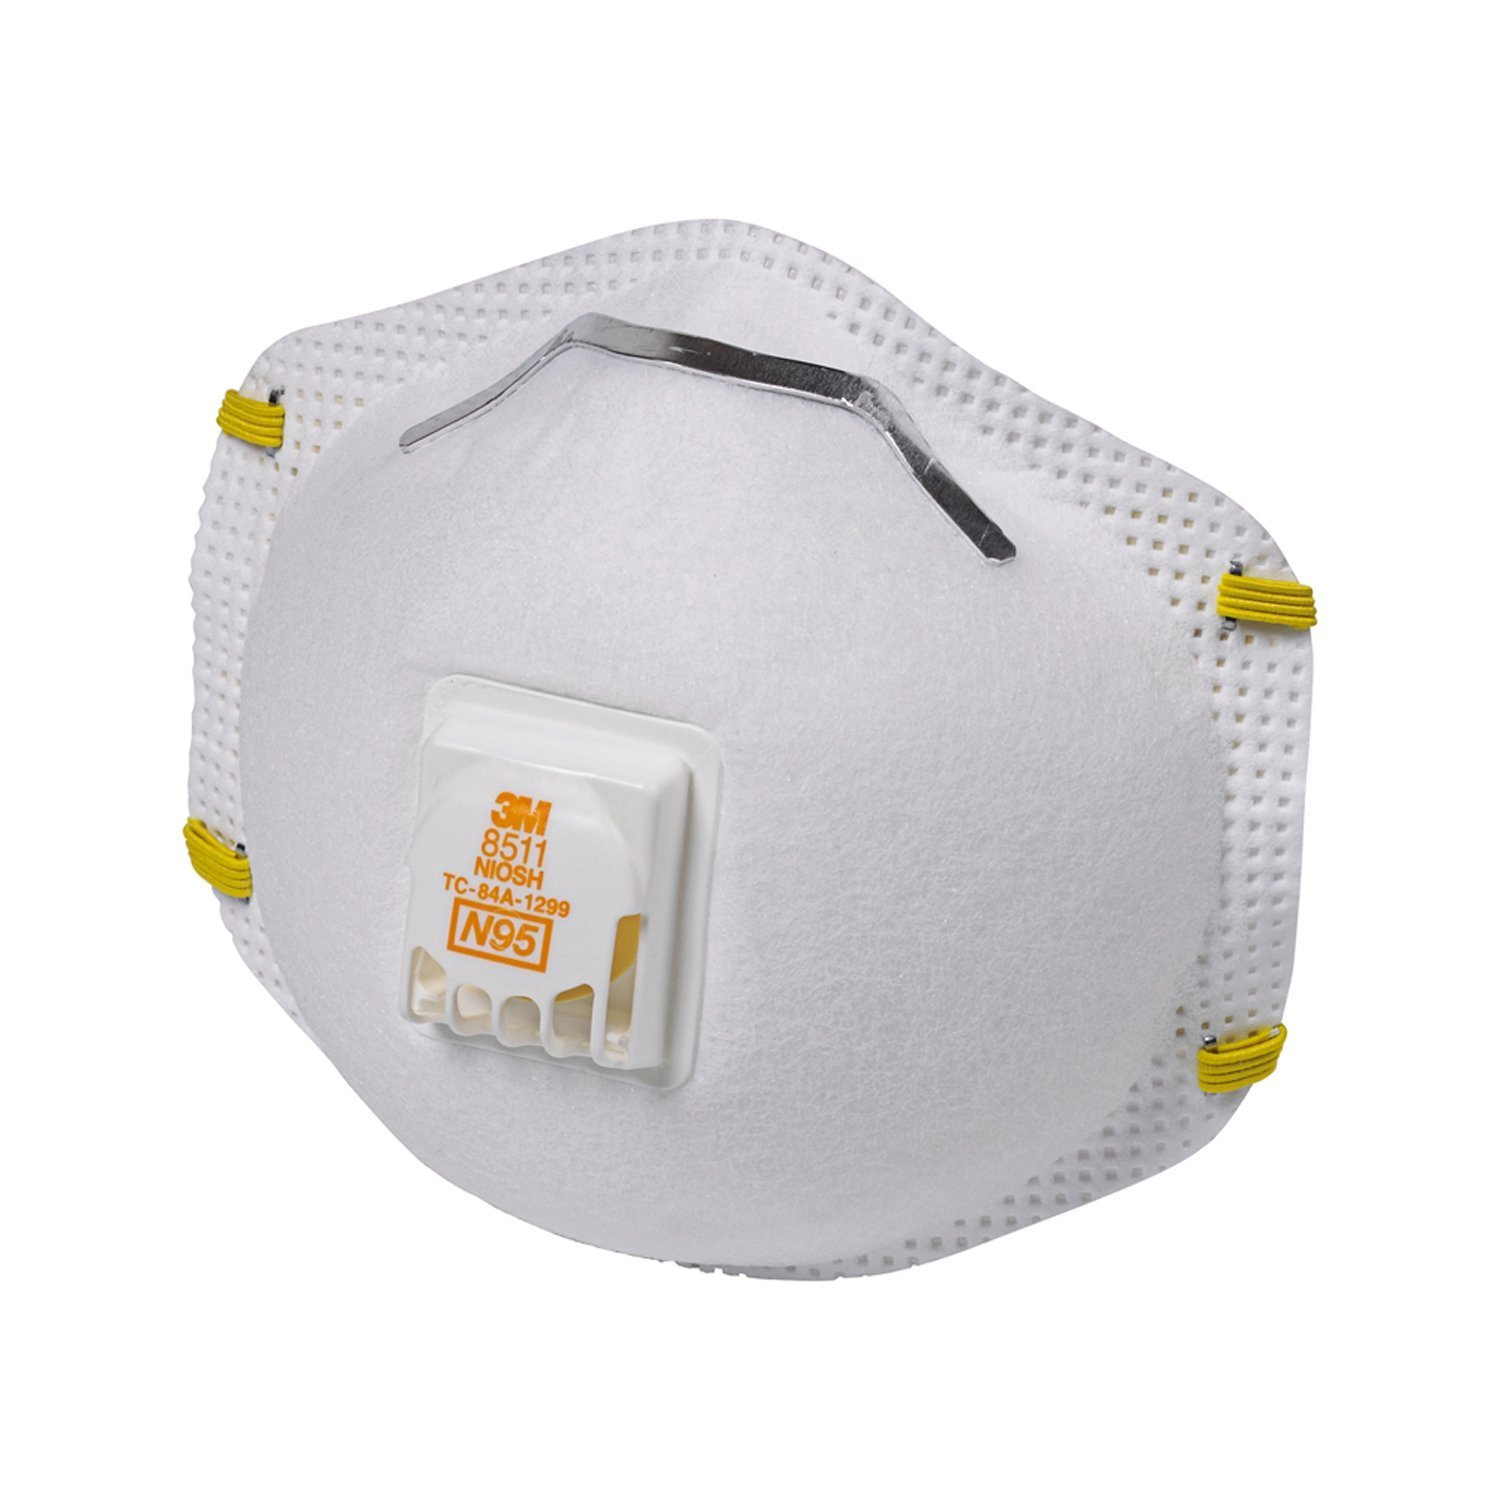 Cool With Flow 8511 Valve Respirator 3m